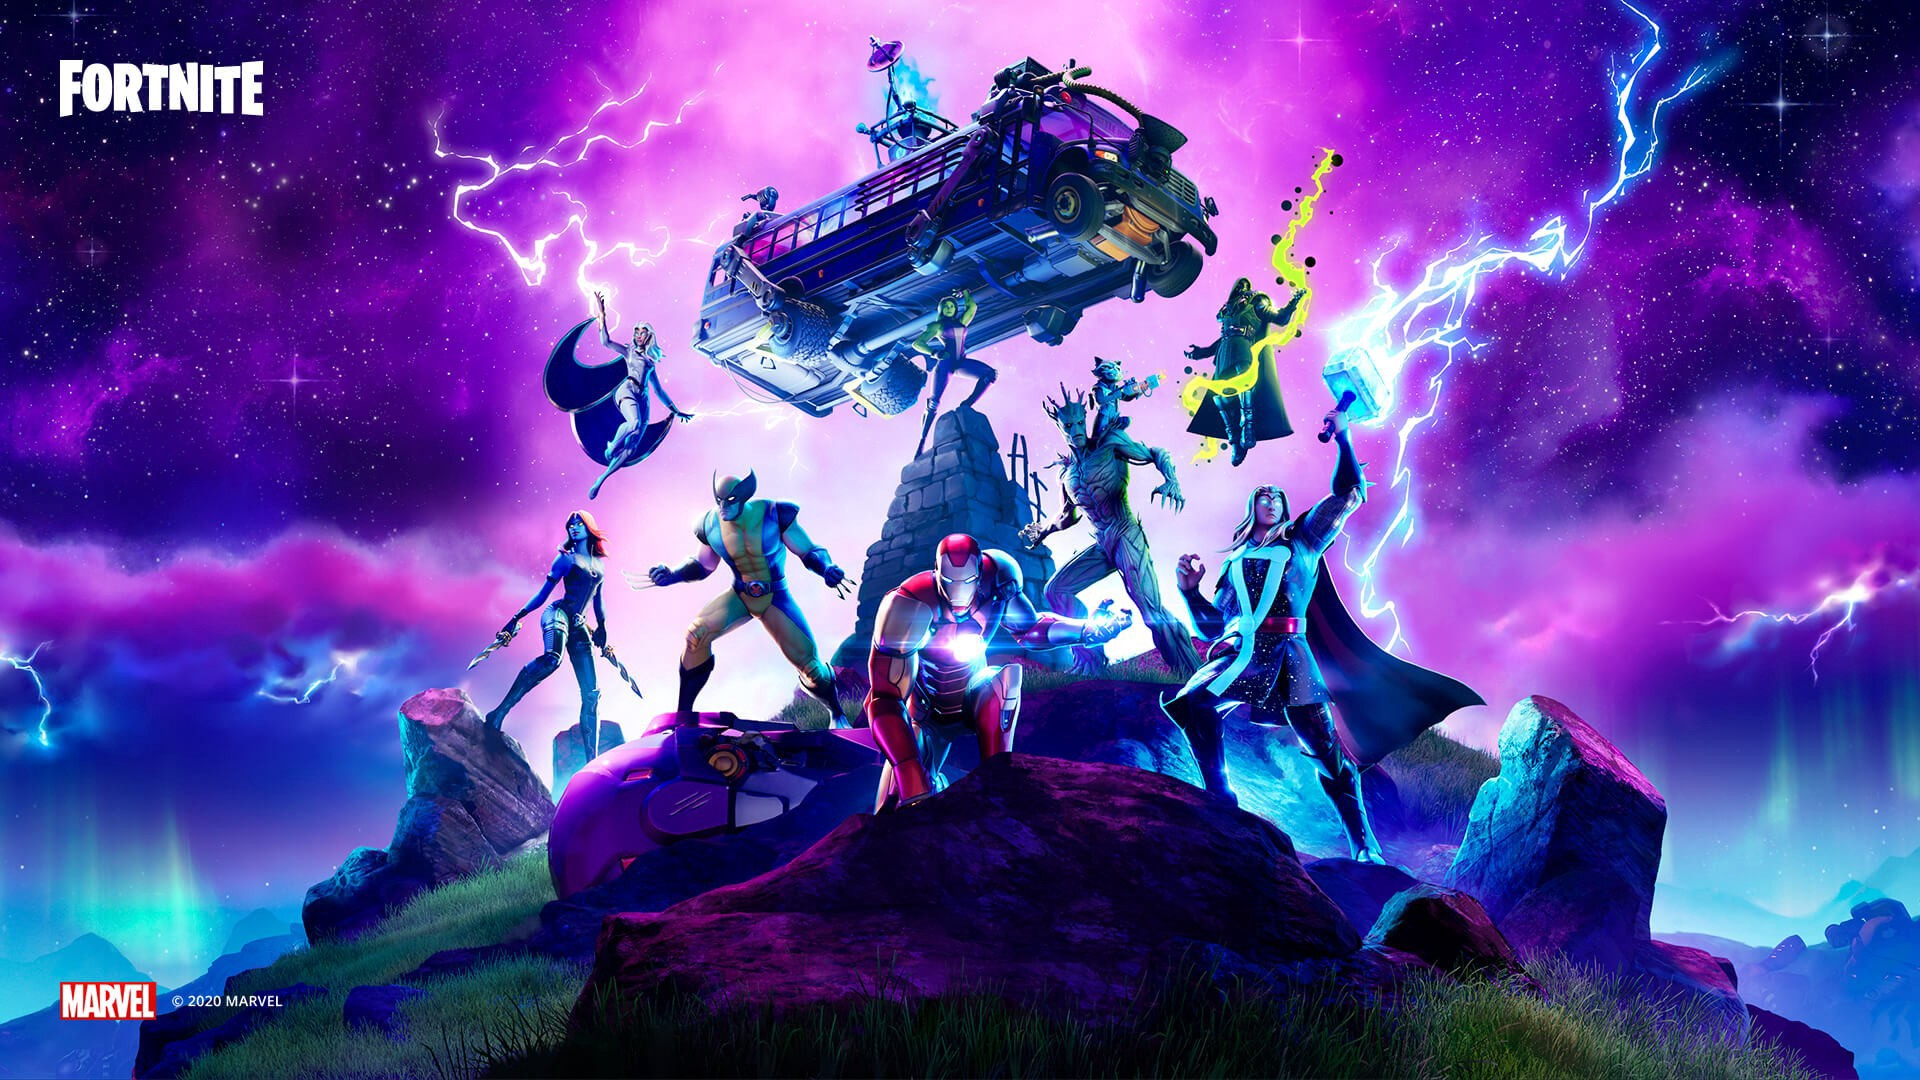 Fortnite Chapter 2 season 5 coming in around a month